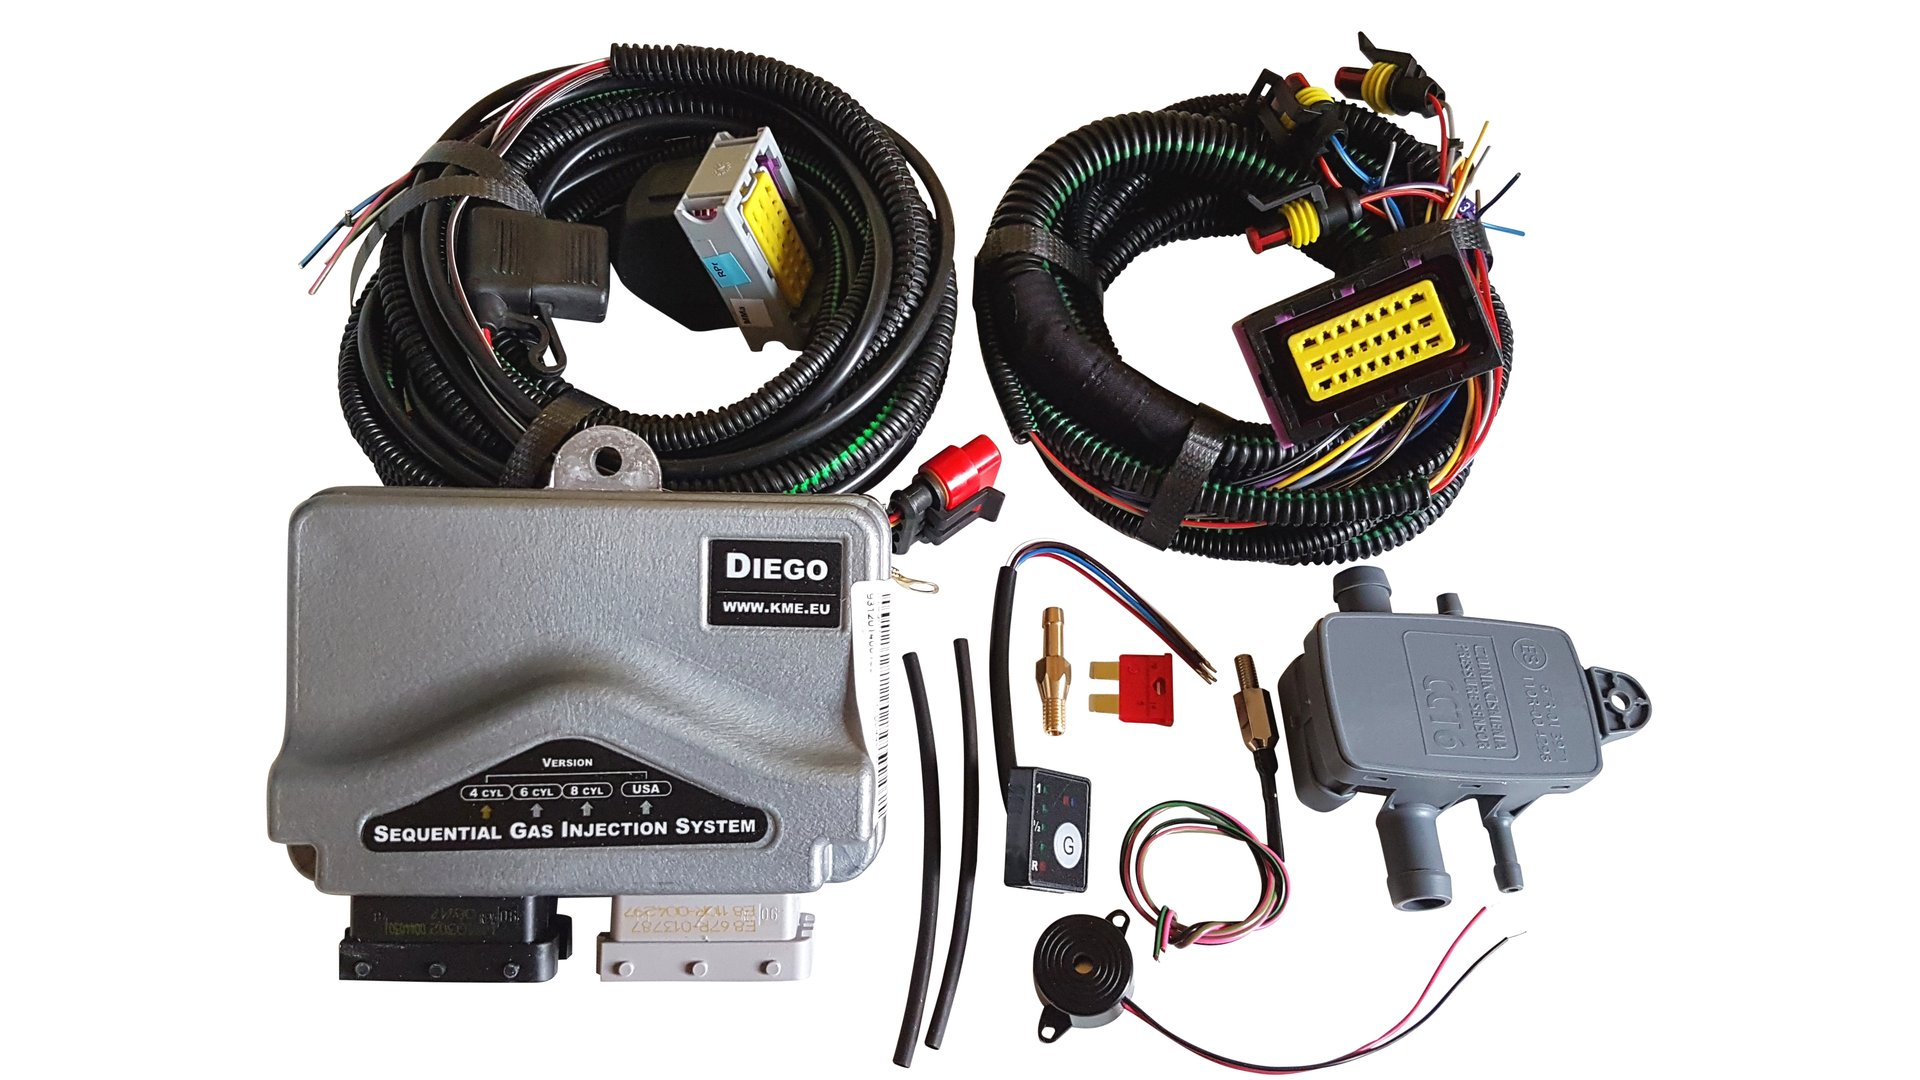 hight resolution of kme diego g3 4 zyl electronic kit vogler gpl gas shop king electronics 4 cyl computer map sensor switch wiring harness